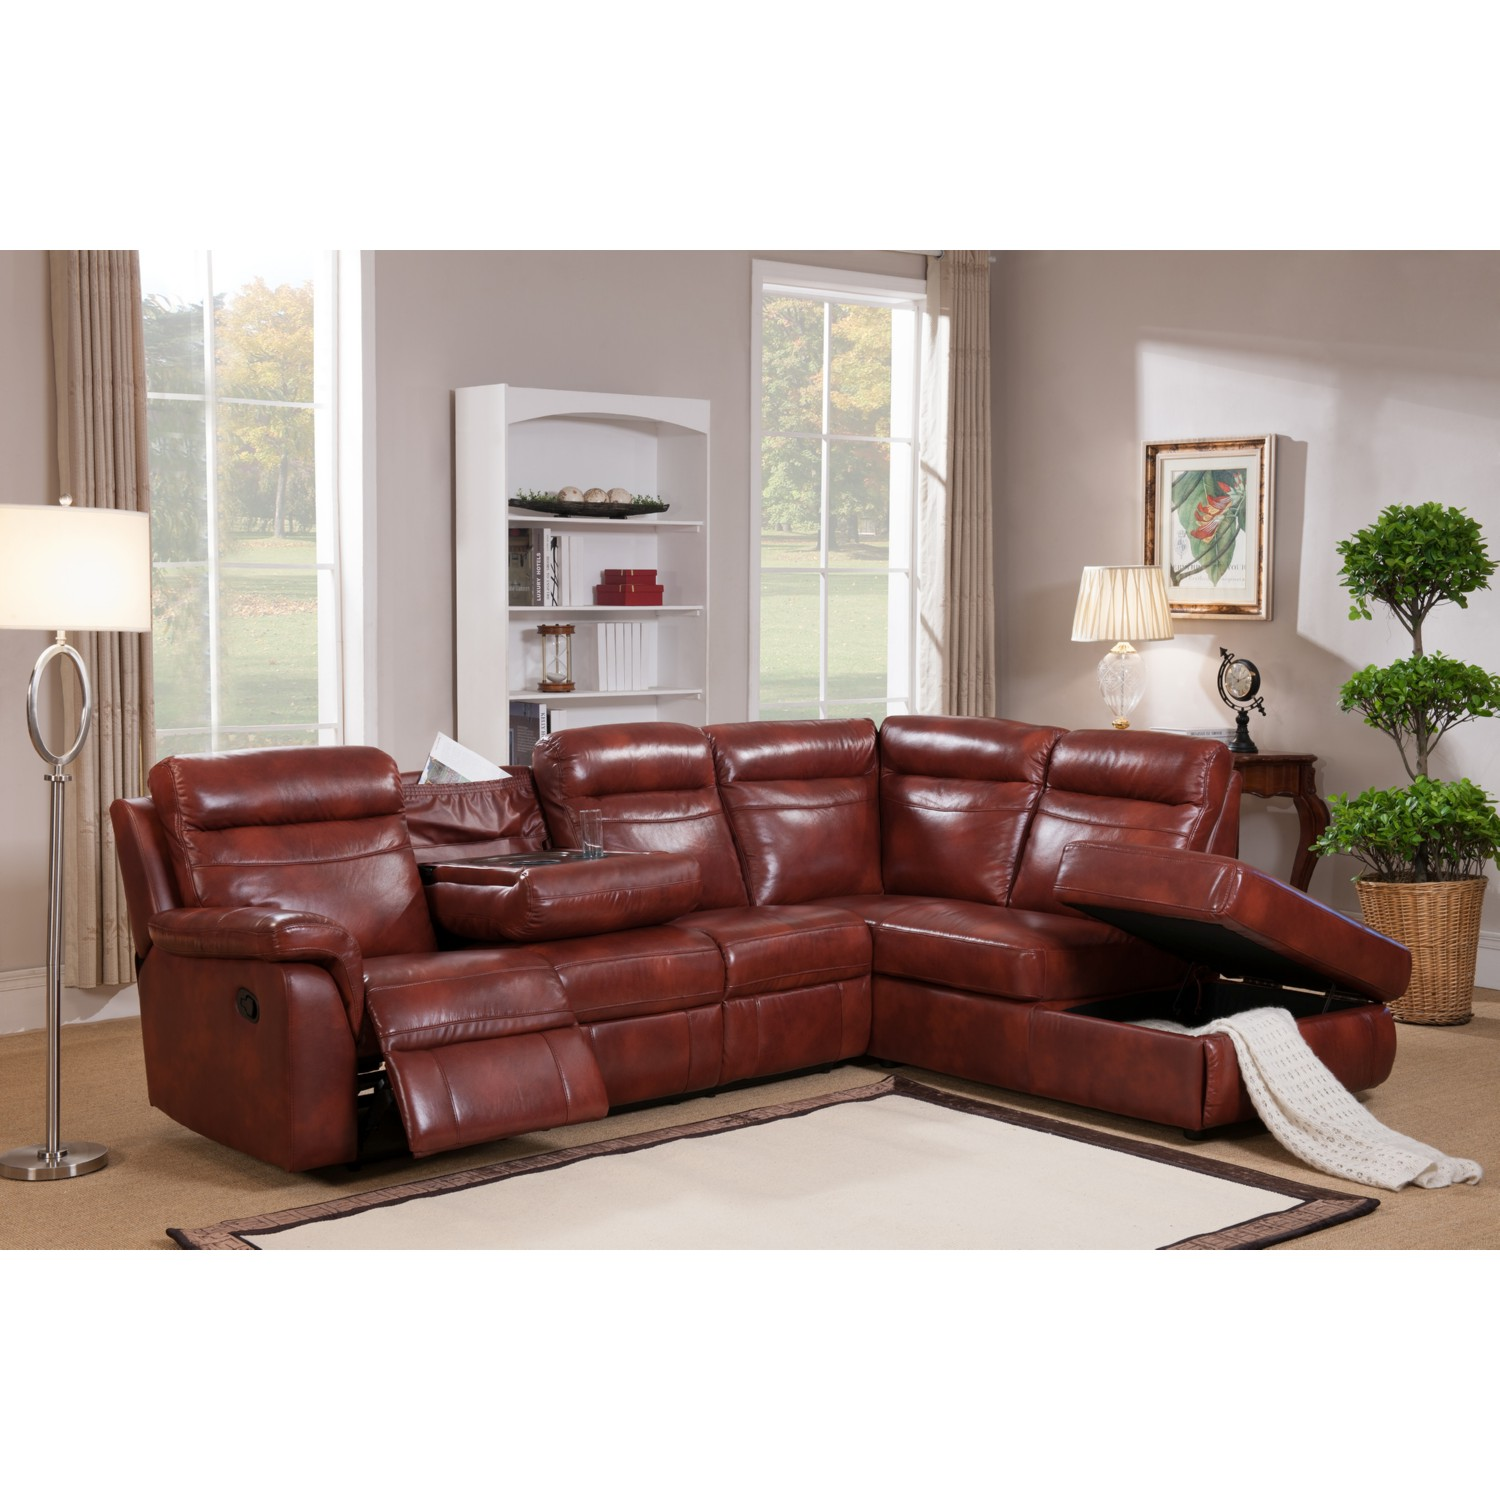 Amax leather haristonsec hariston 100 leather sectional w for Bellagio 100 leather chaise